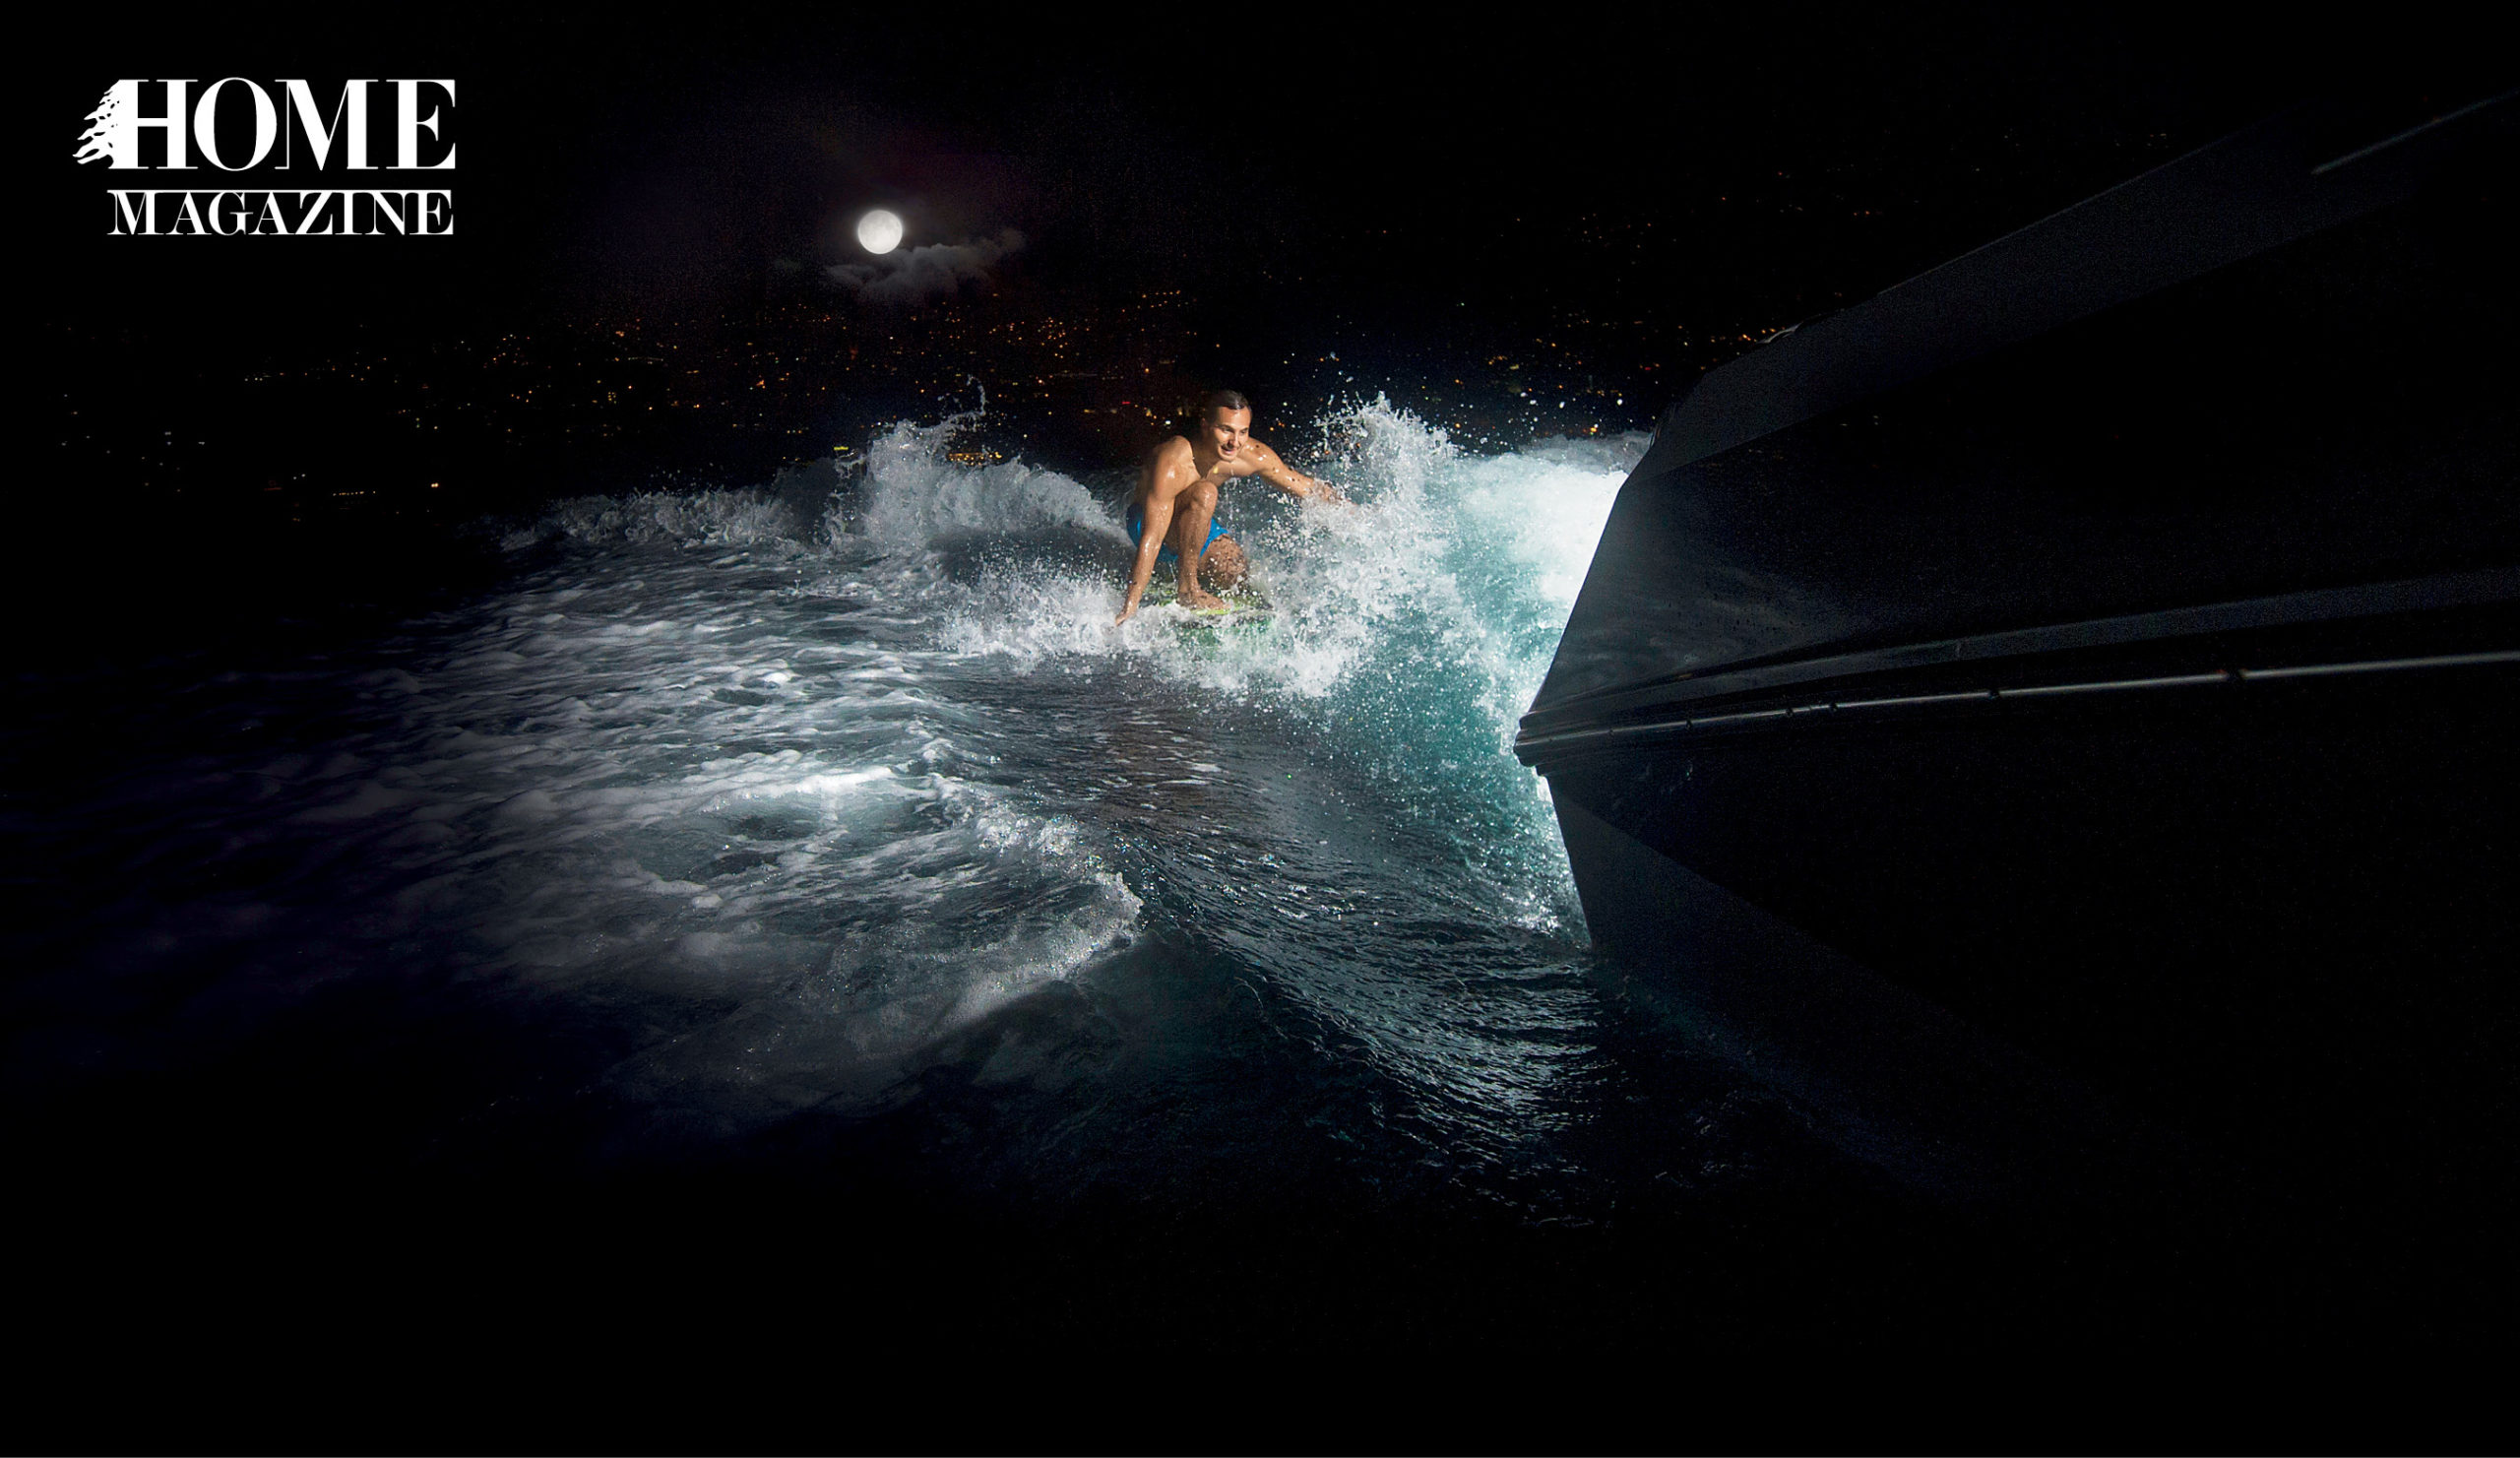 Man water surfing at night